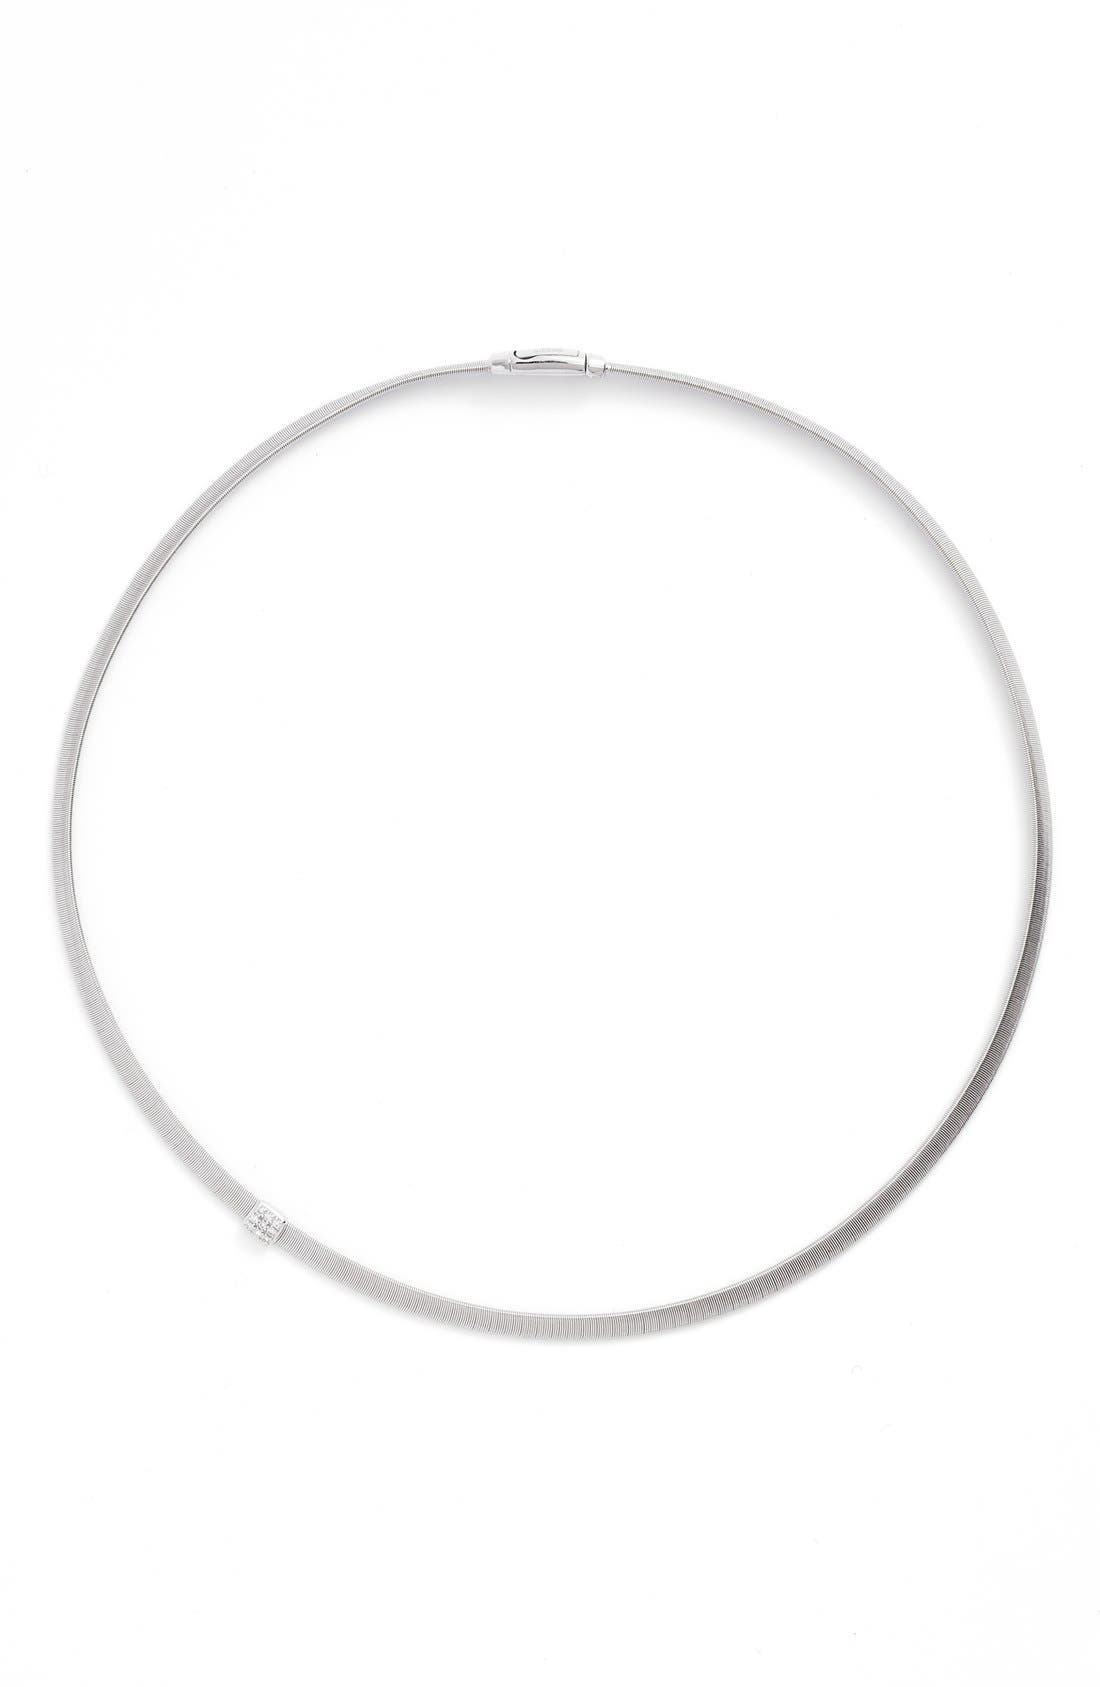 Marco Bicego Masai Diamond Collar Necklace